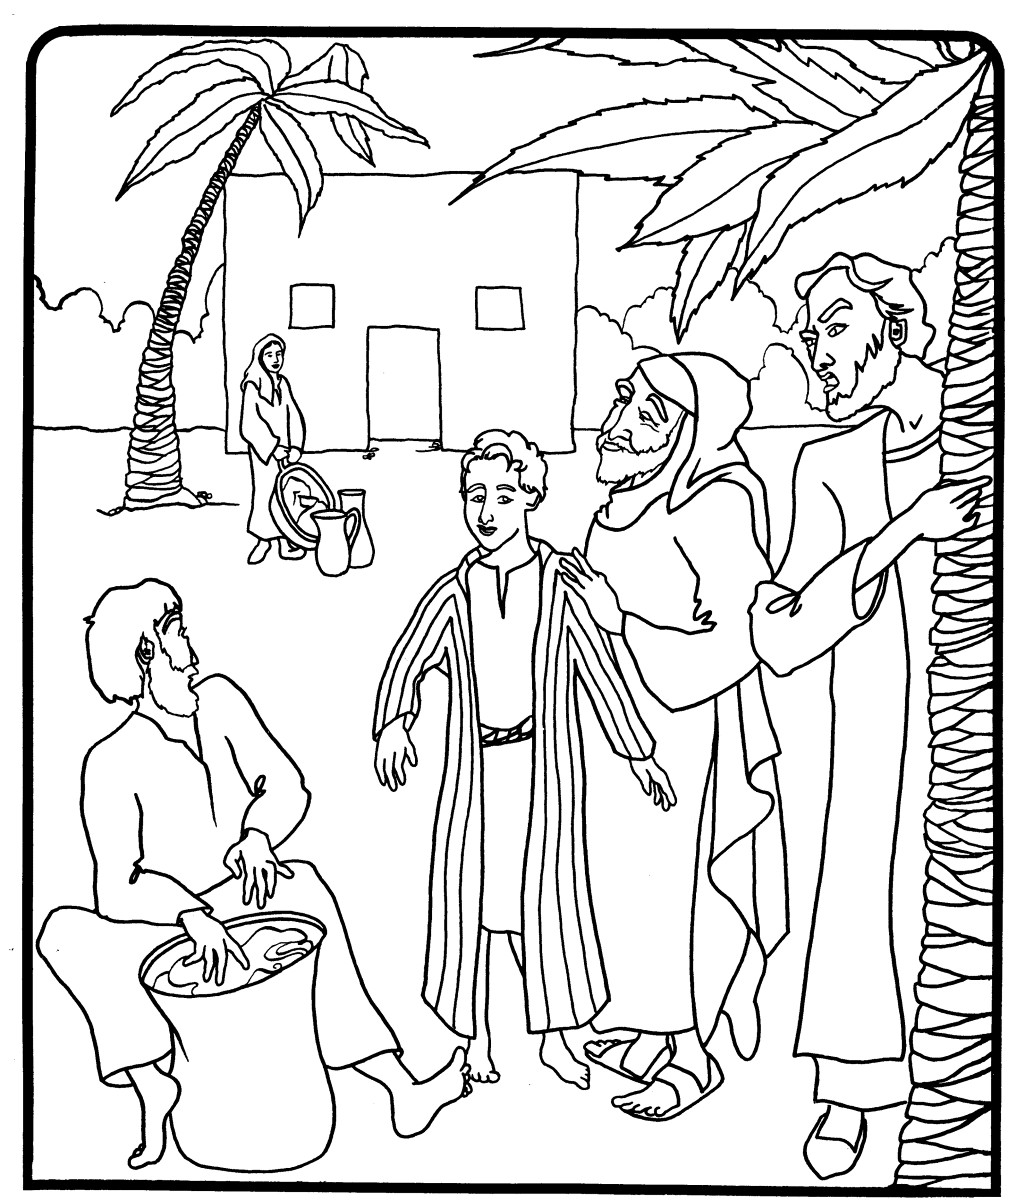 1016x1200 Bible Coloring Pages Joseph His Brothers Best Of Coloring Pages